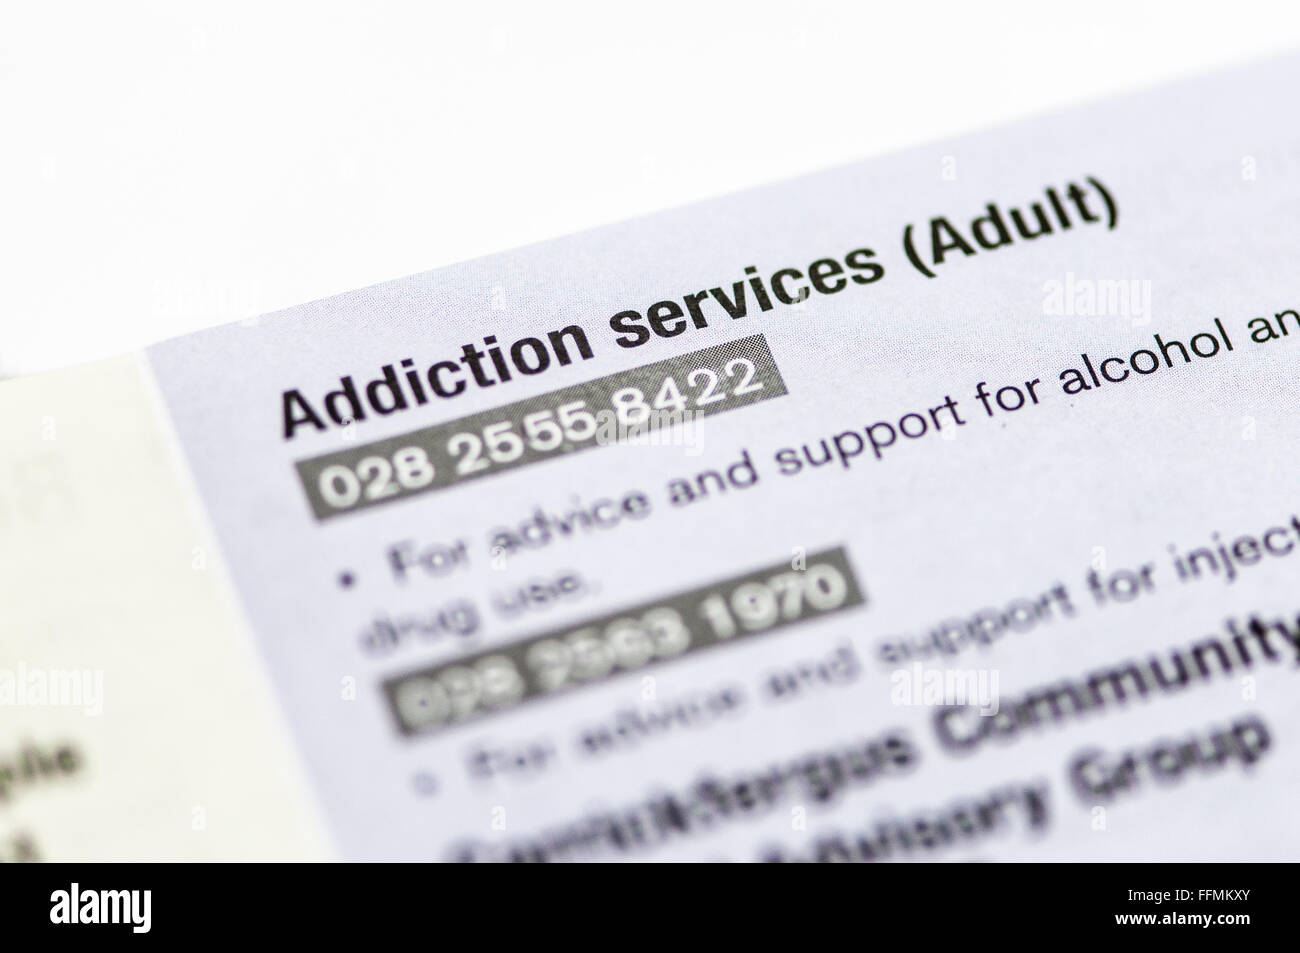 Directory of Adult addiction services and other Mental Health Services - Stock Image